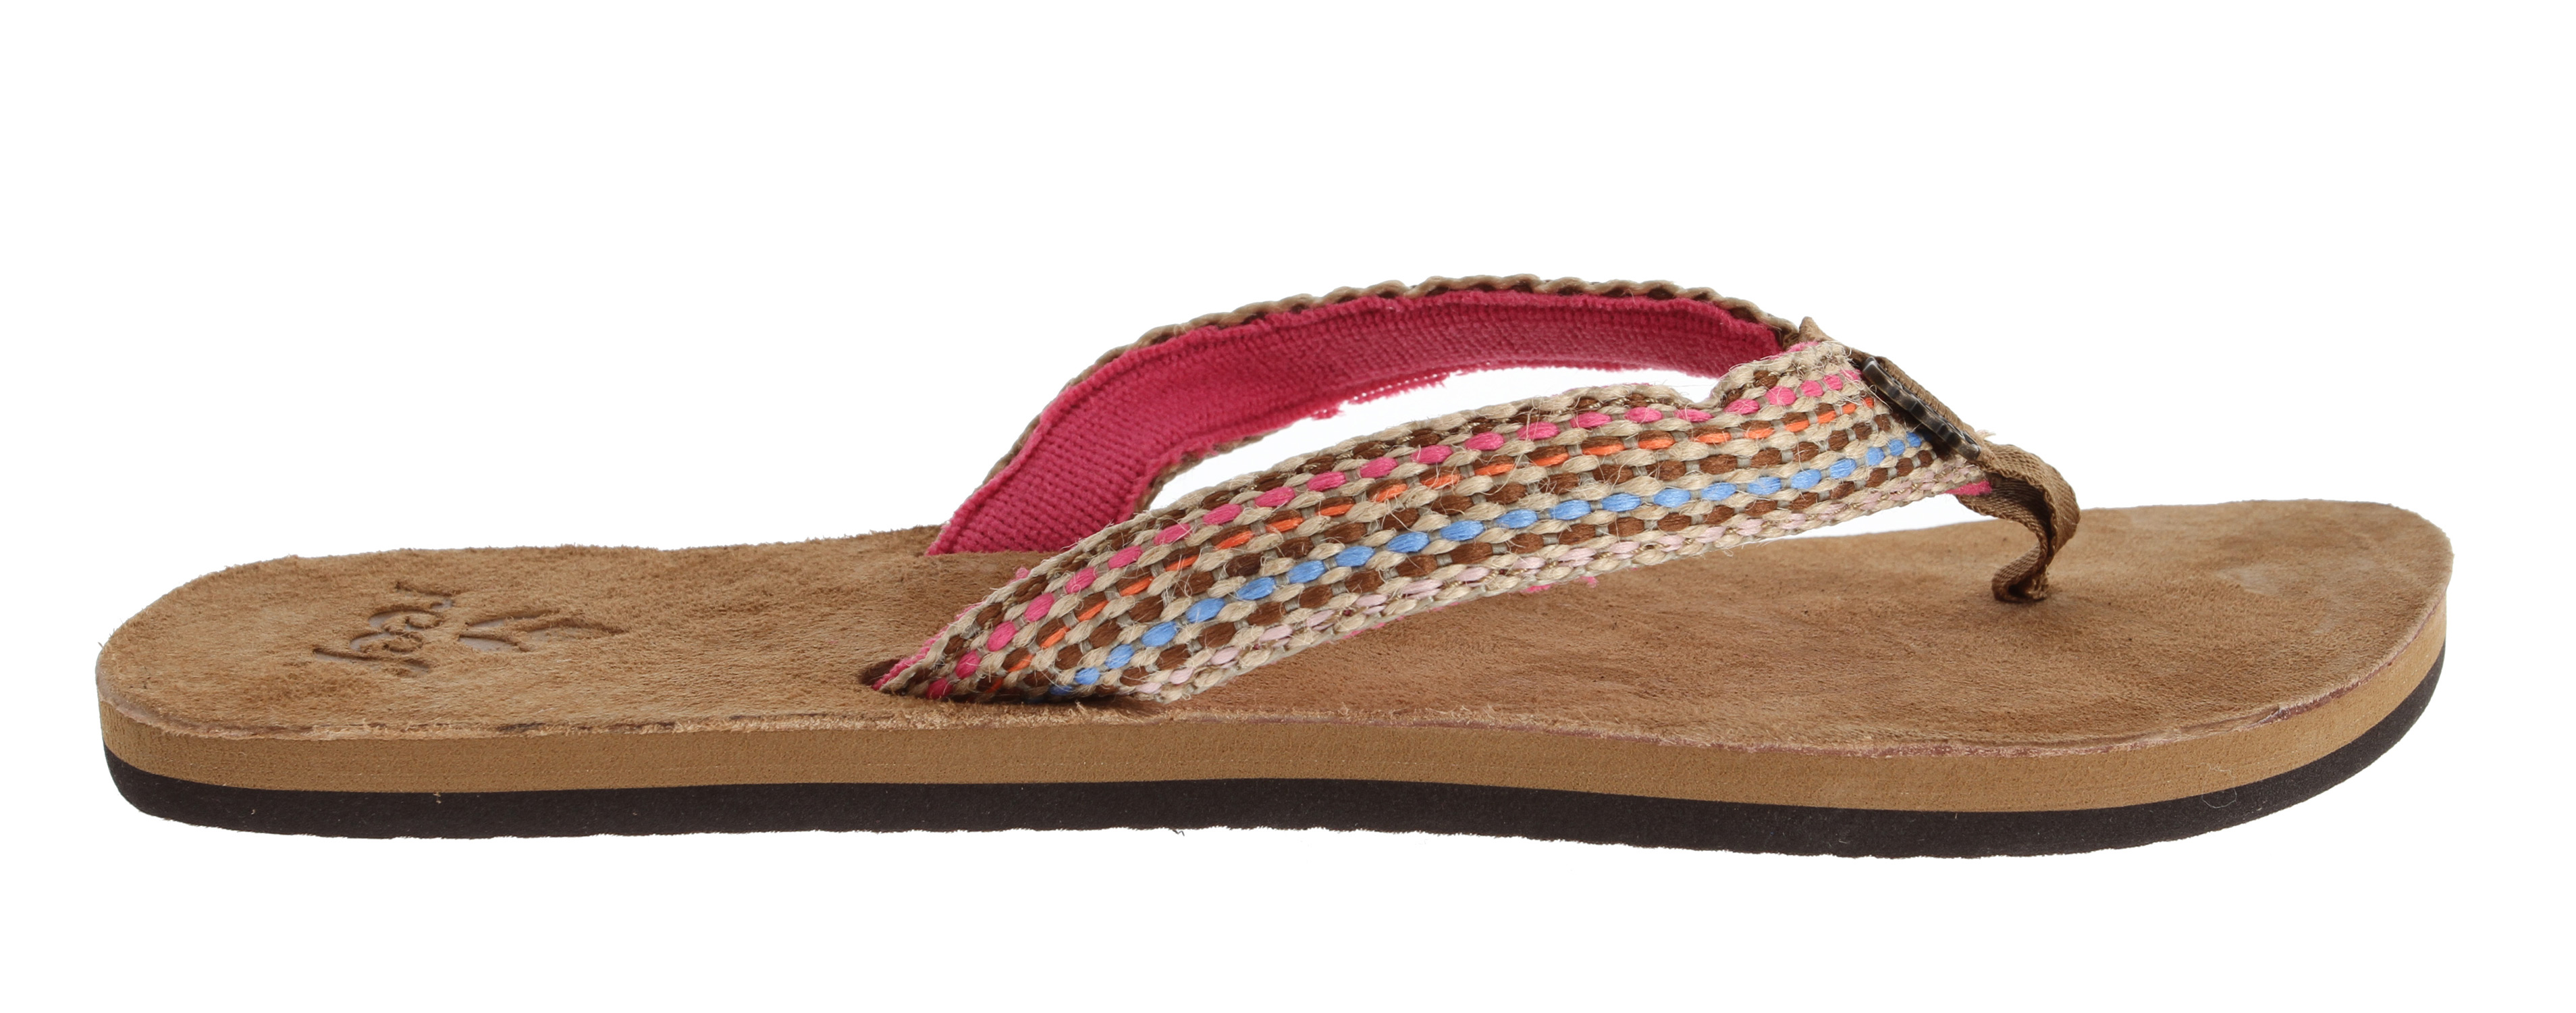 Surf Gypsies need love too. A soft suede leather footbed defines the Gypsy Love sandal, featuring woven strap of soft terrycloth lining, suede leather toepost overlay and woven polyester toe posts. These women's sandals also include anatomical arch support and rubber sponge outsole for flexibility. * Rubber Oustole * Terry Woven Label * Soft Suede Leather Footbed * Woven Strap of Soft Terrycloth Lining * Suede Leather Toepost Overlay * Woven Polyester Toe Posts * Anatomical Arch Support and Rubber Sponge Outsole - $37.95